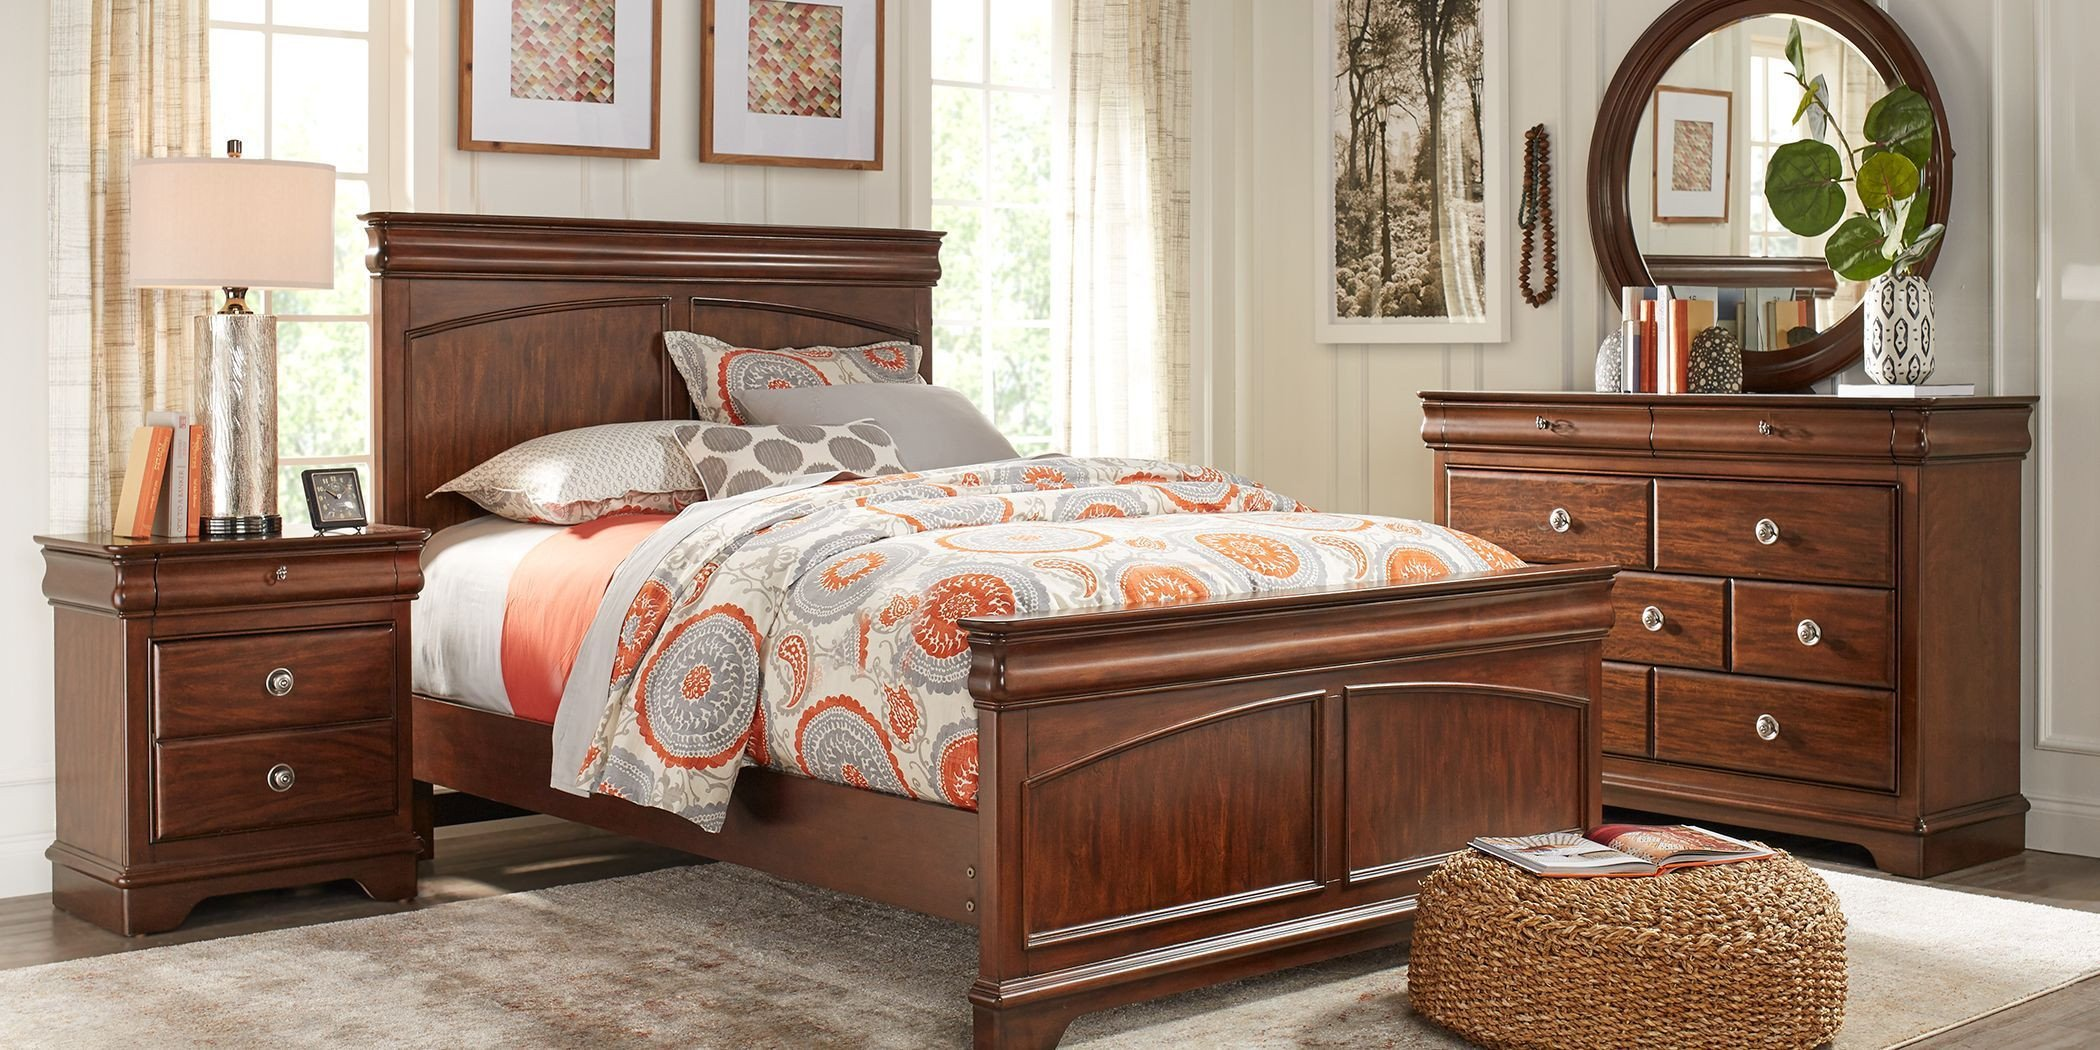 Rooms to Go Bedroom Furniture Sale Fresh Kids Oberon Cherry 5 Pc Twin Panel Bedroom In 2019